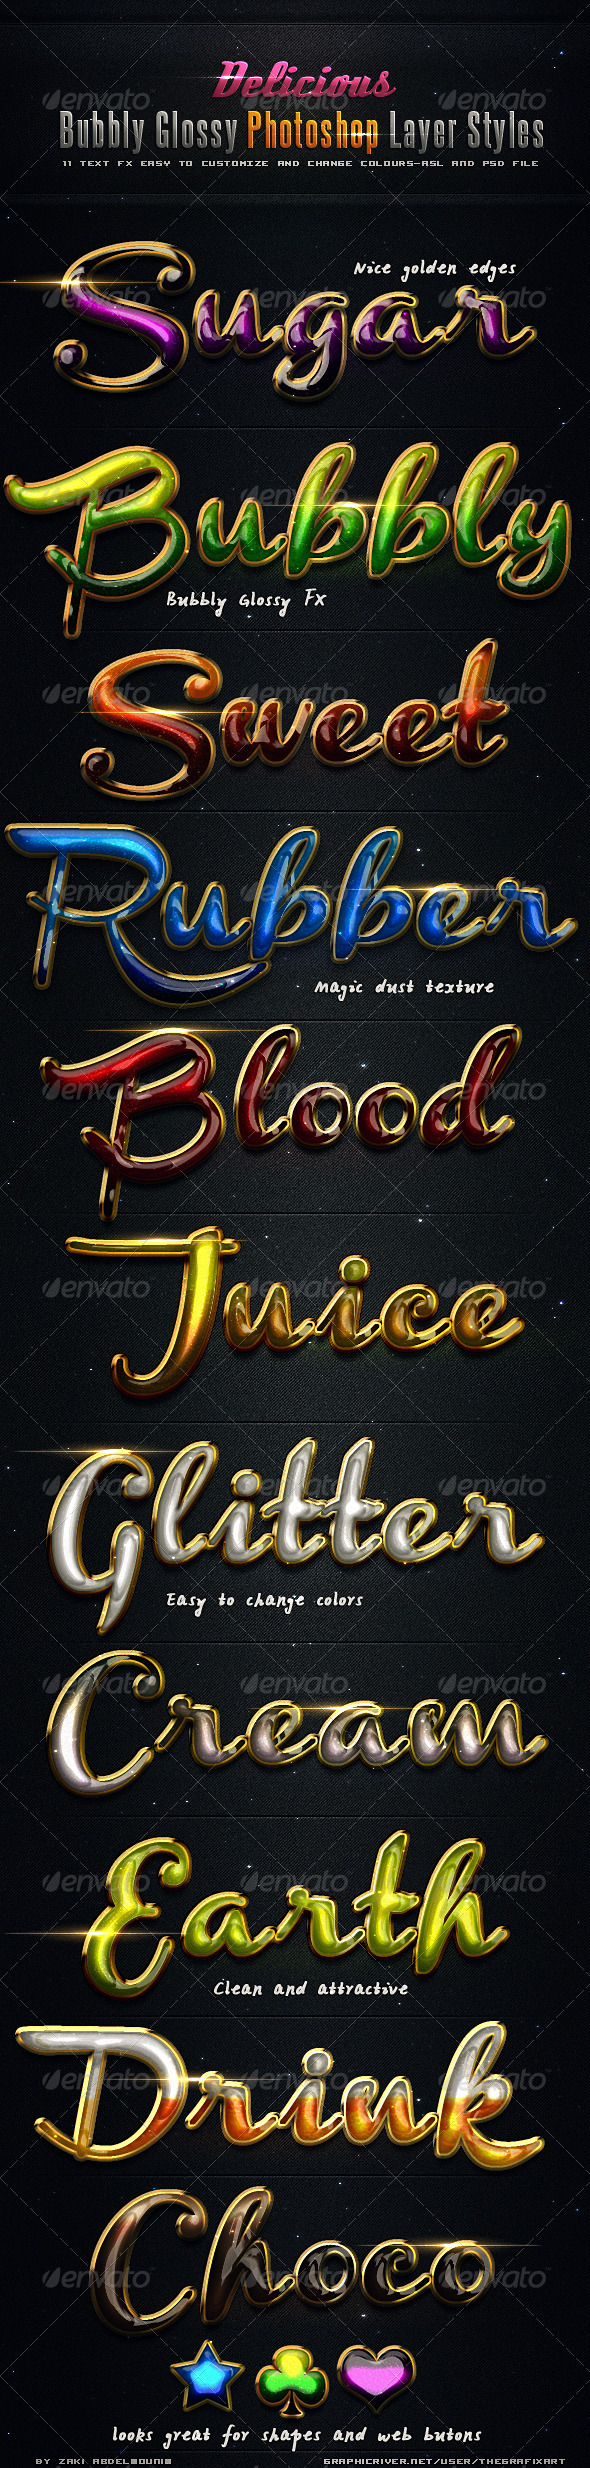 Delicious Bubbly Photoshop Styles - Text Effects Styles